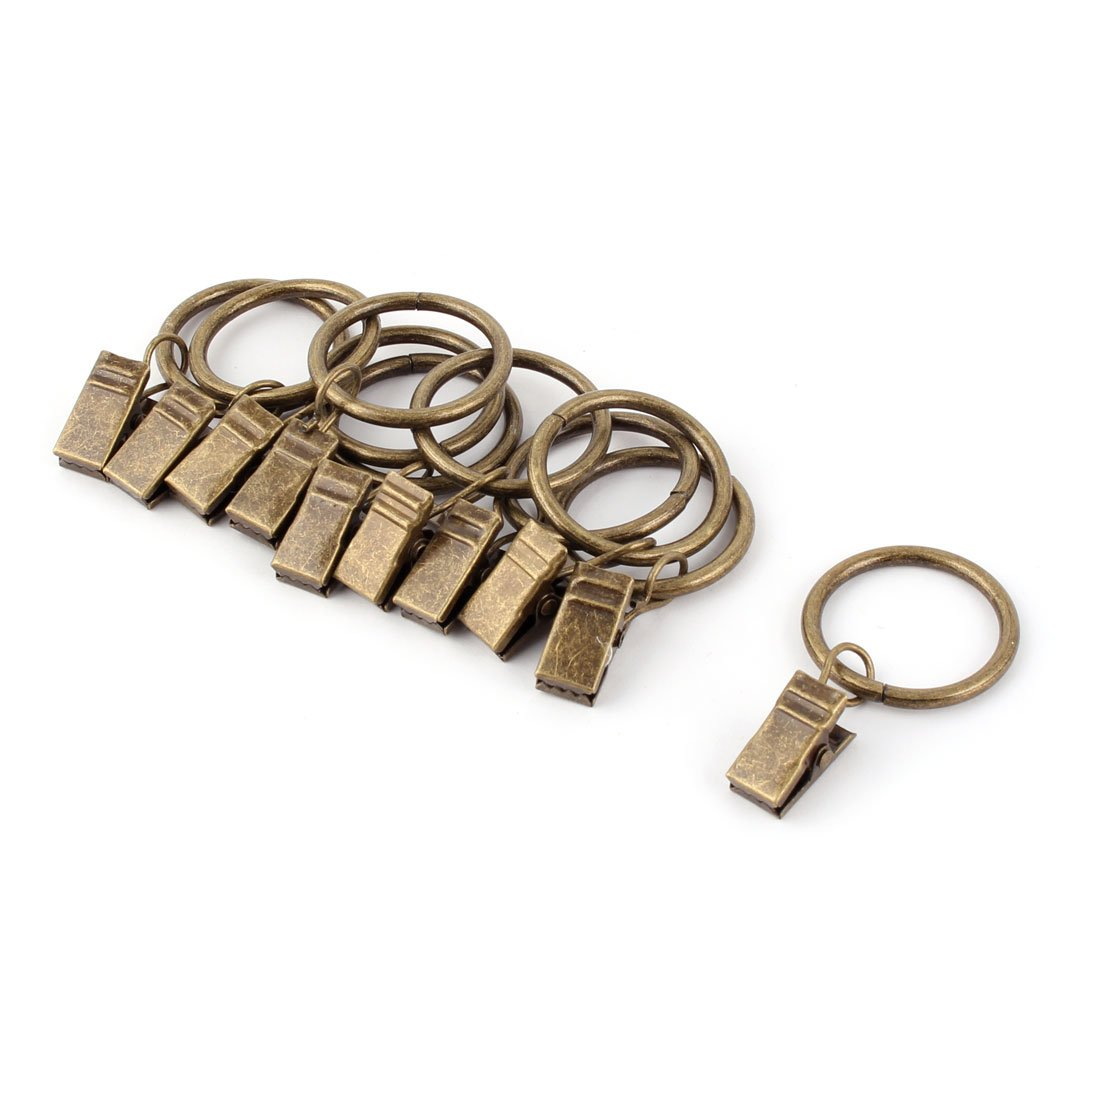 uxcell Stainless Steel Window Drapery Wire Rod Hook Curtain Clip Rings 25mm Dia 10pcs Bronze Tone US-SA-AJD-248492